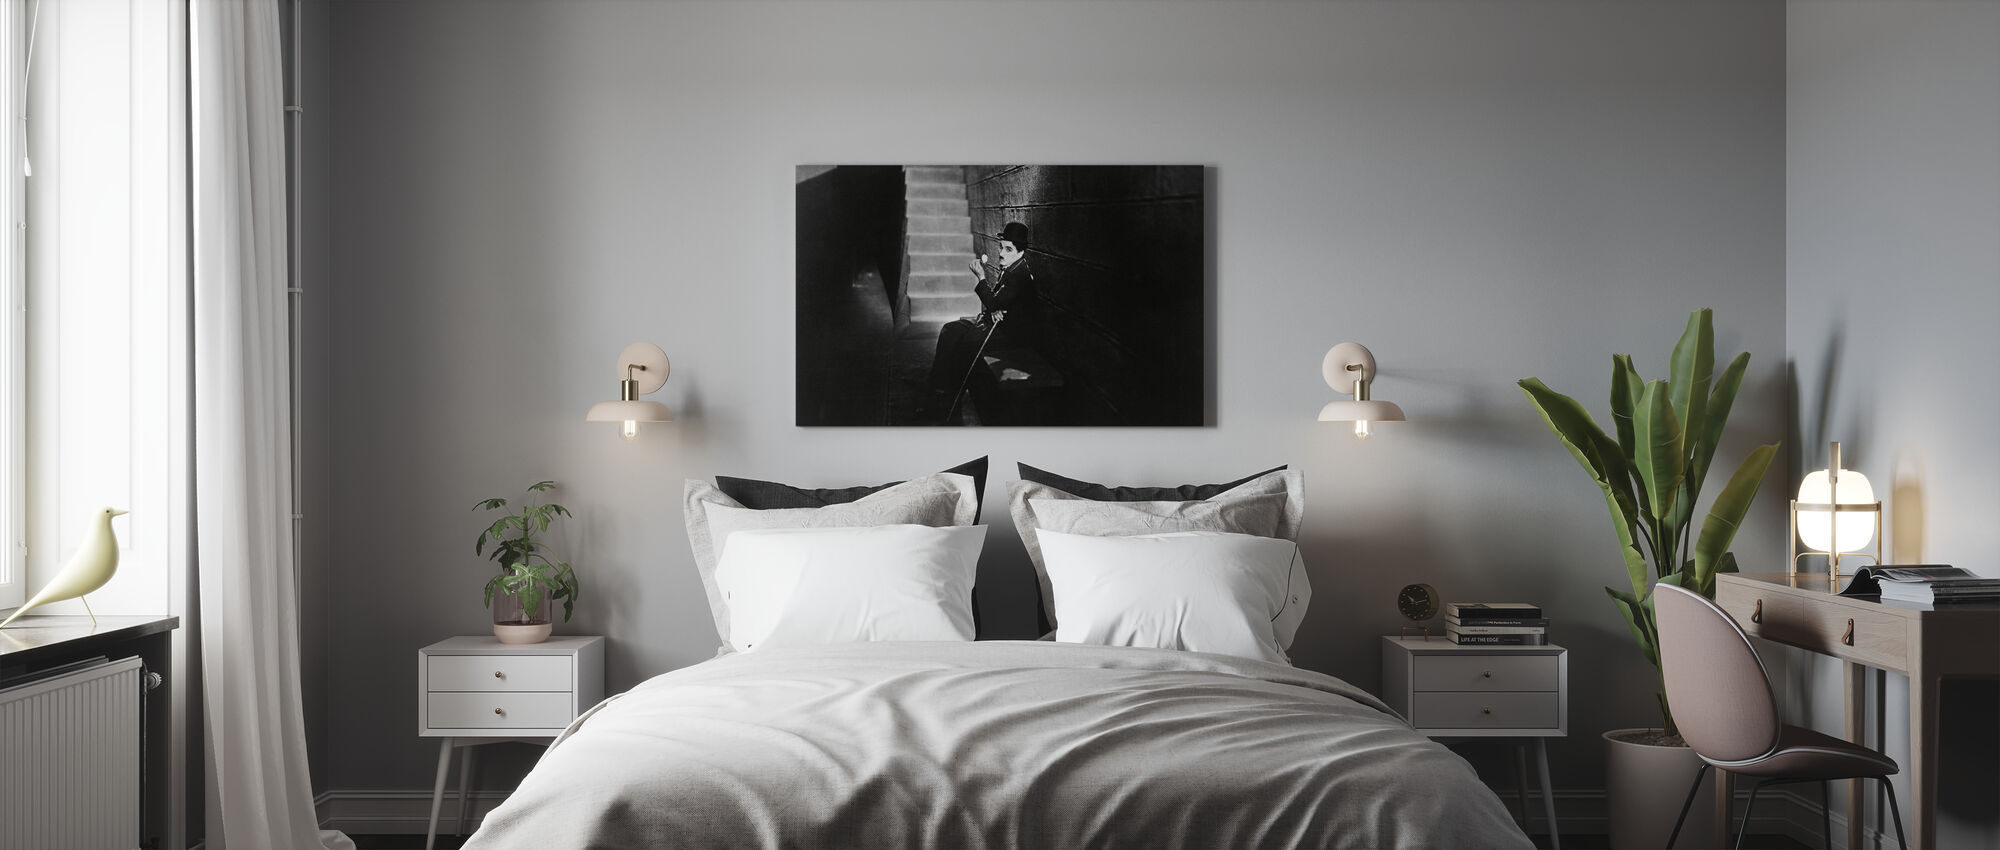 City Lights - Charlie Chaplin - Canvas print - Bedroom